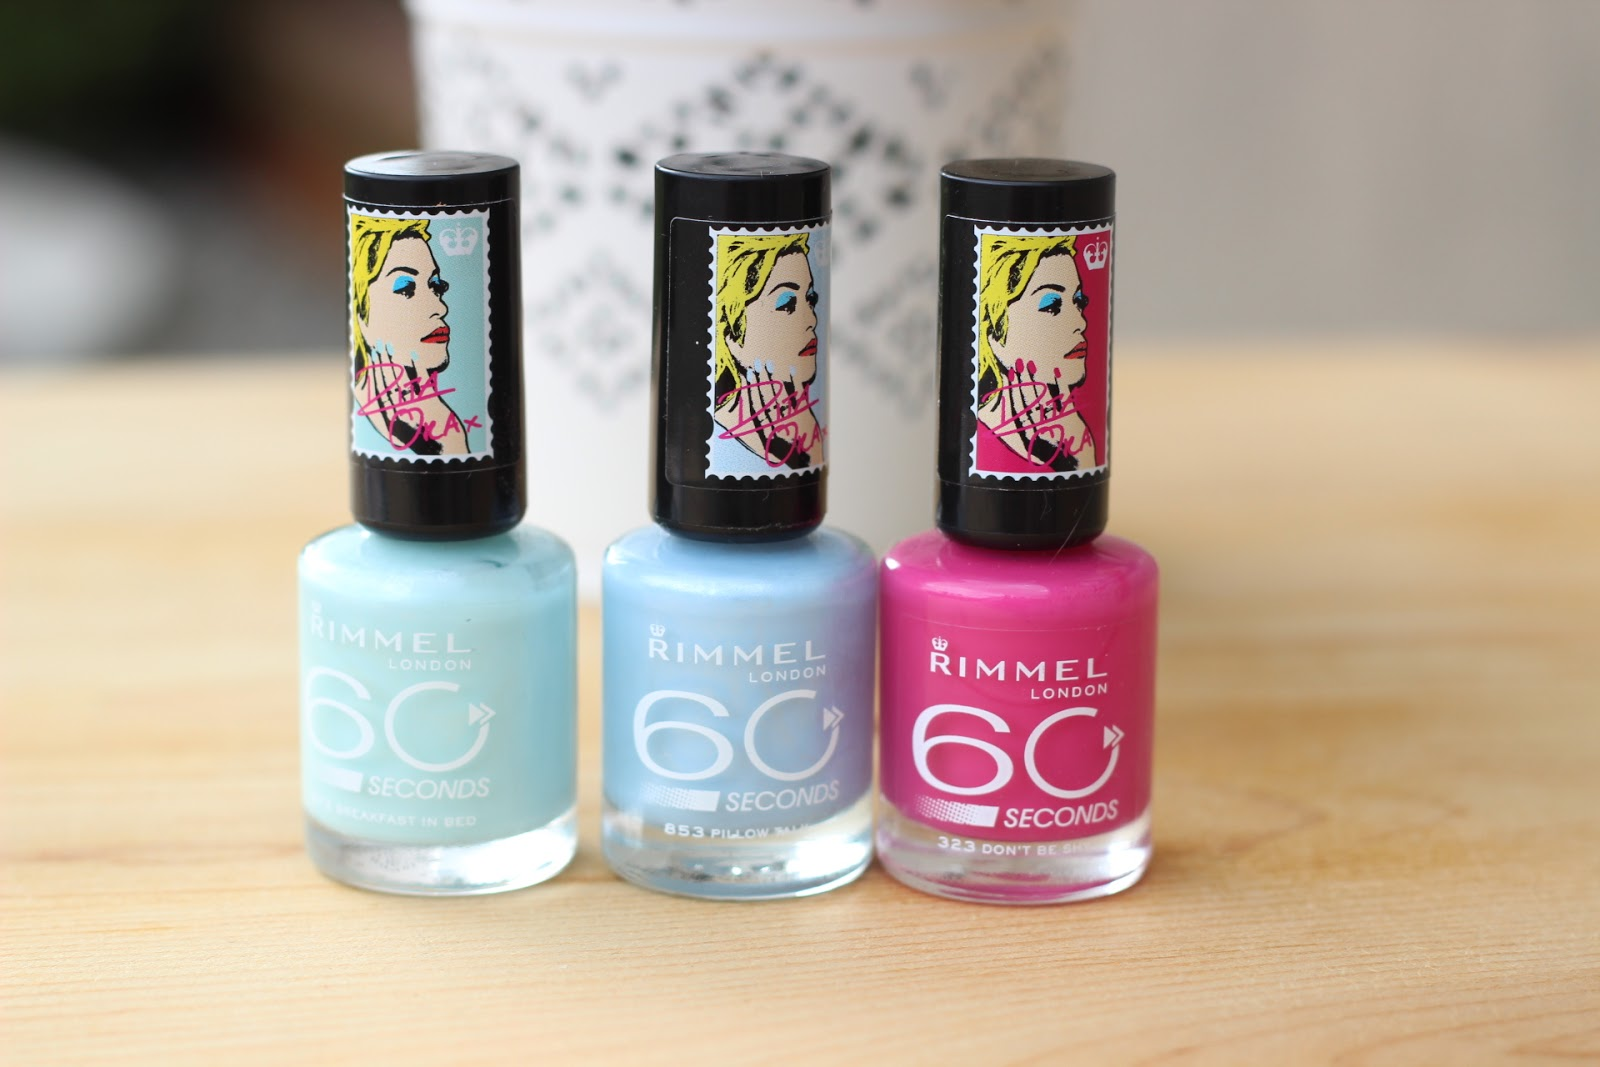 Rimmel Rita Ora 60 Seconds Nail Polishes